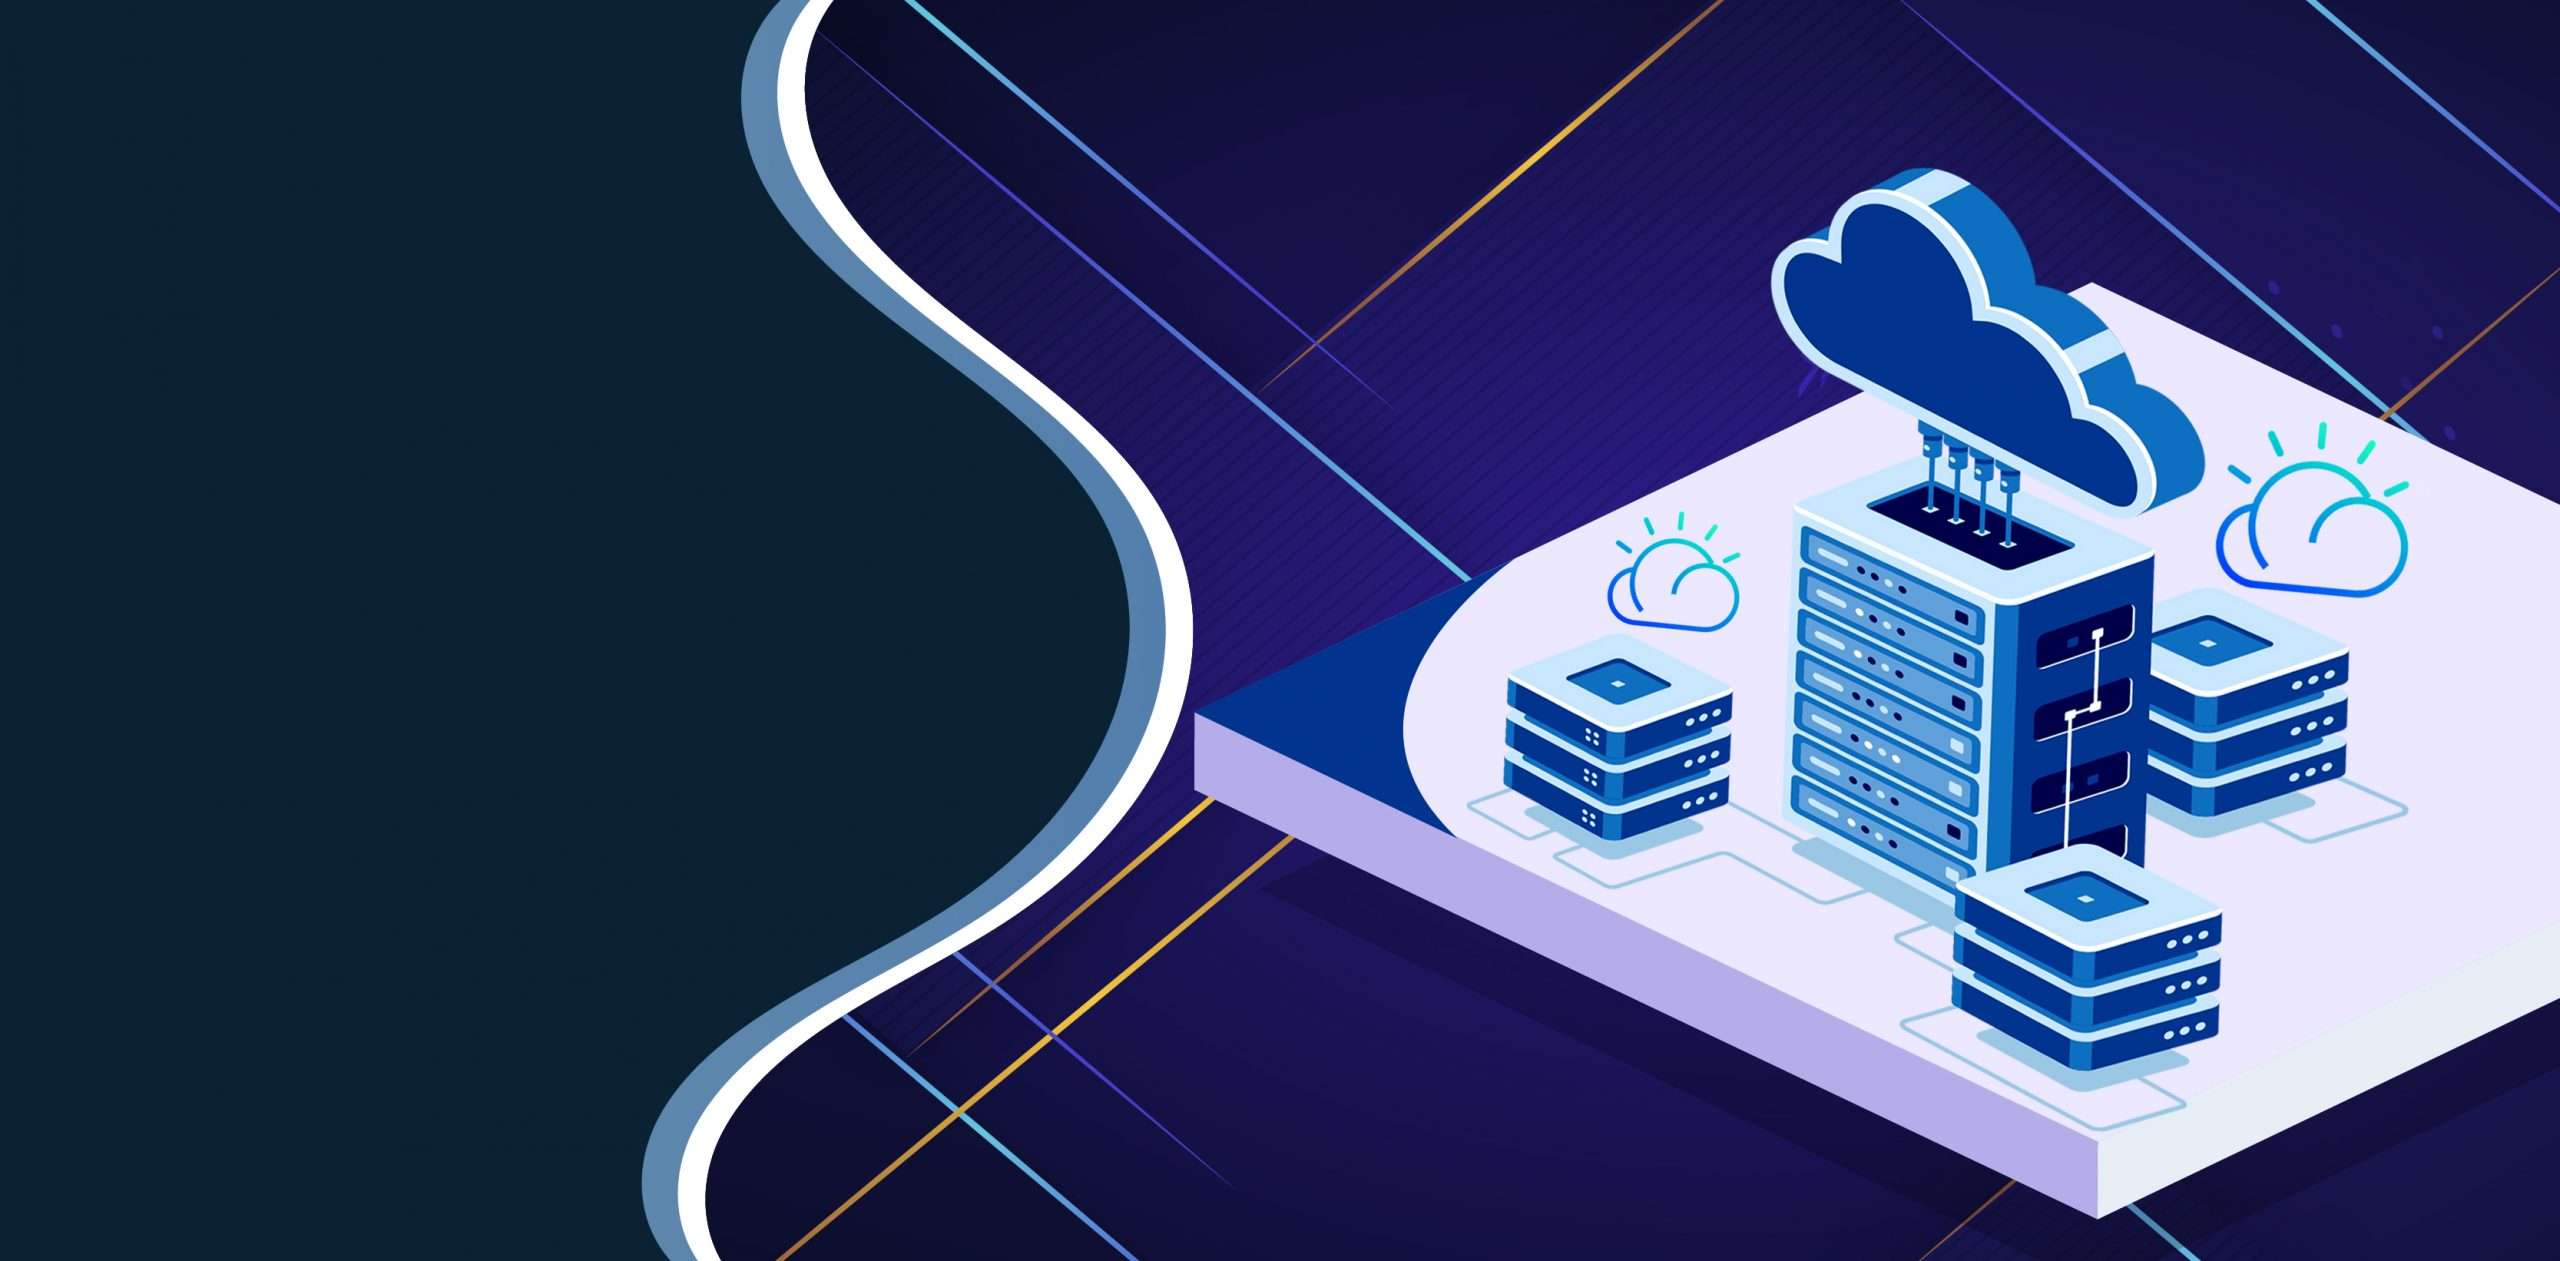 ibm cloud banner